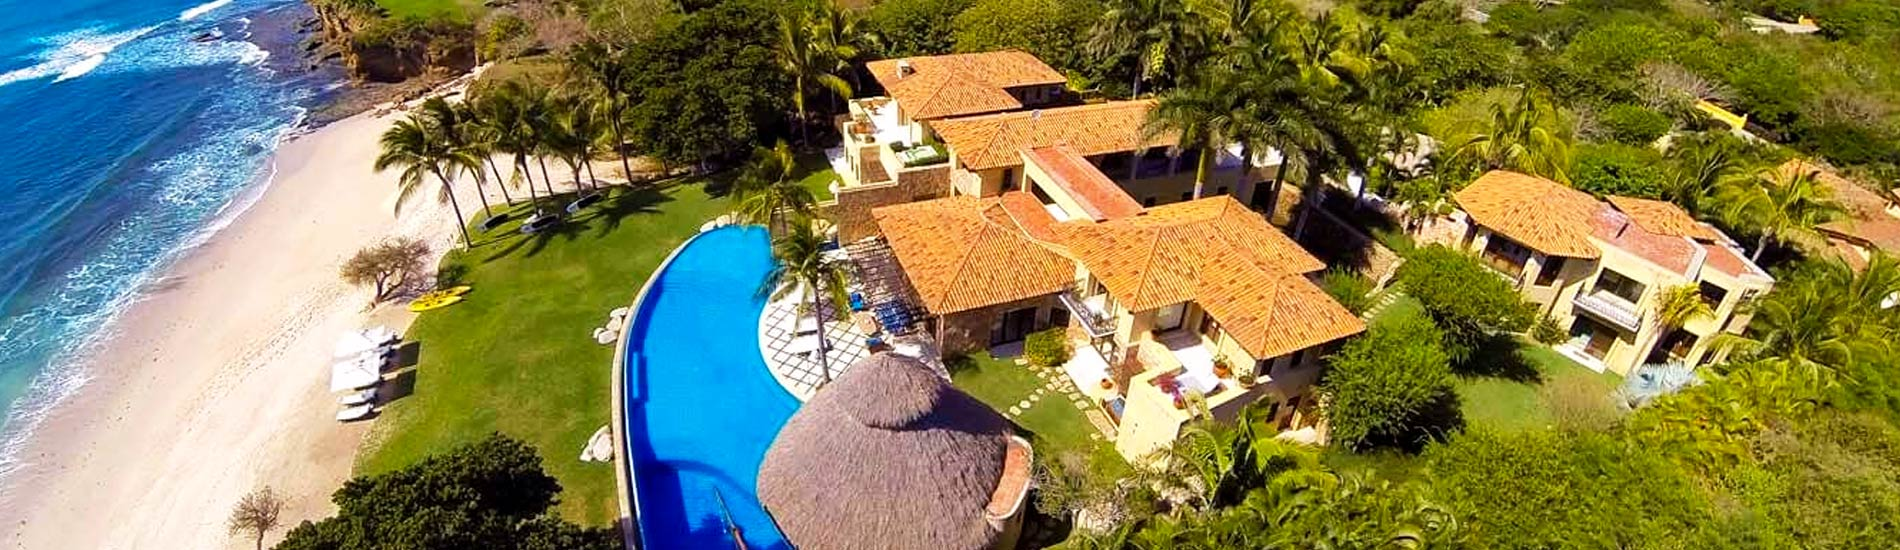 casa la vida dulce - punta mita | journey mexico luxury villas